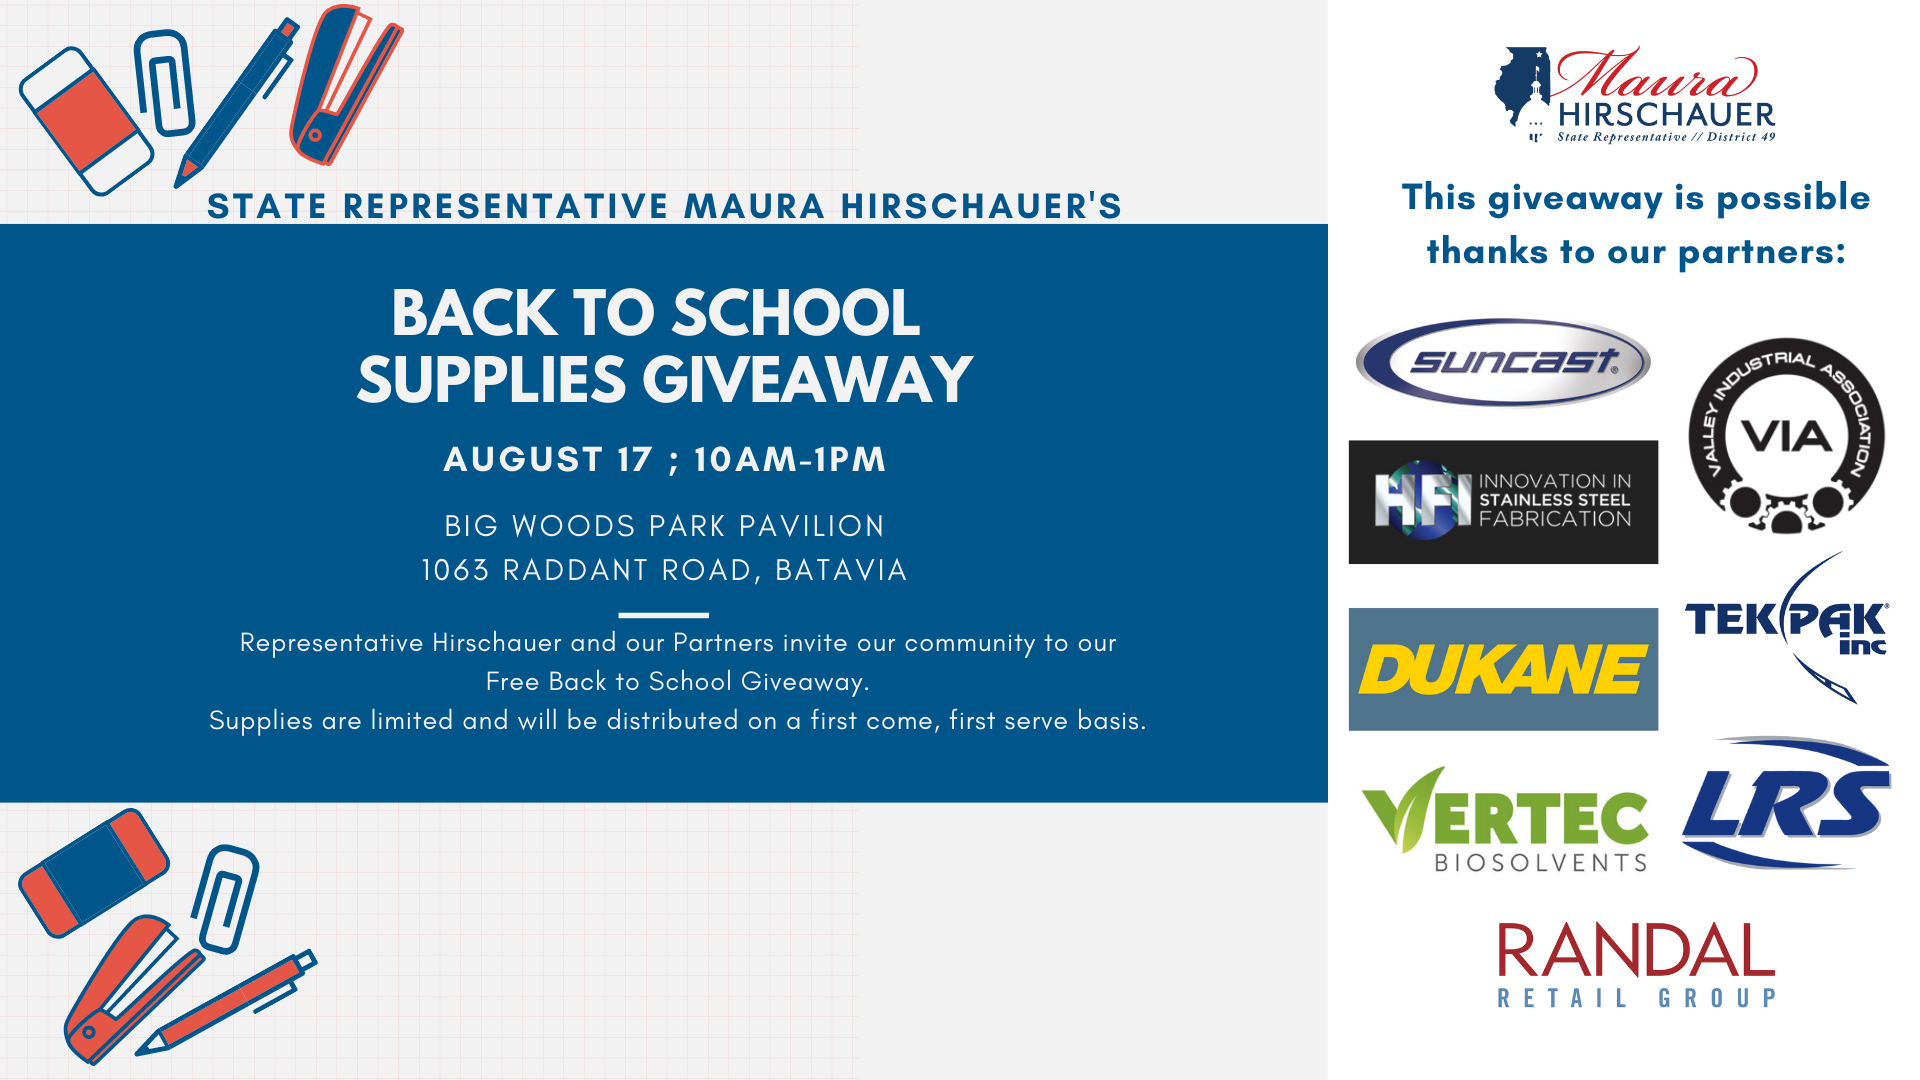 """School supplies graphic with the text """"State Representative Maura Hirschauer's Back to School Supplies Giveaway - August 17, 10am-1pm, Big Woods Park Pavilion, 1063 Raddant Road, Batavia."""" and sponsor logos for Valley Industrial Association, HFI, Suncast, and DuKane."""